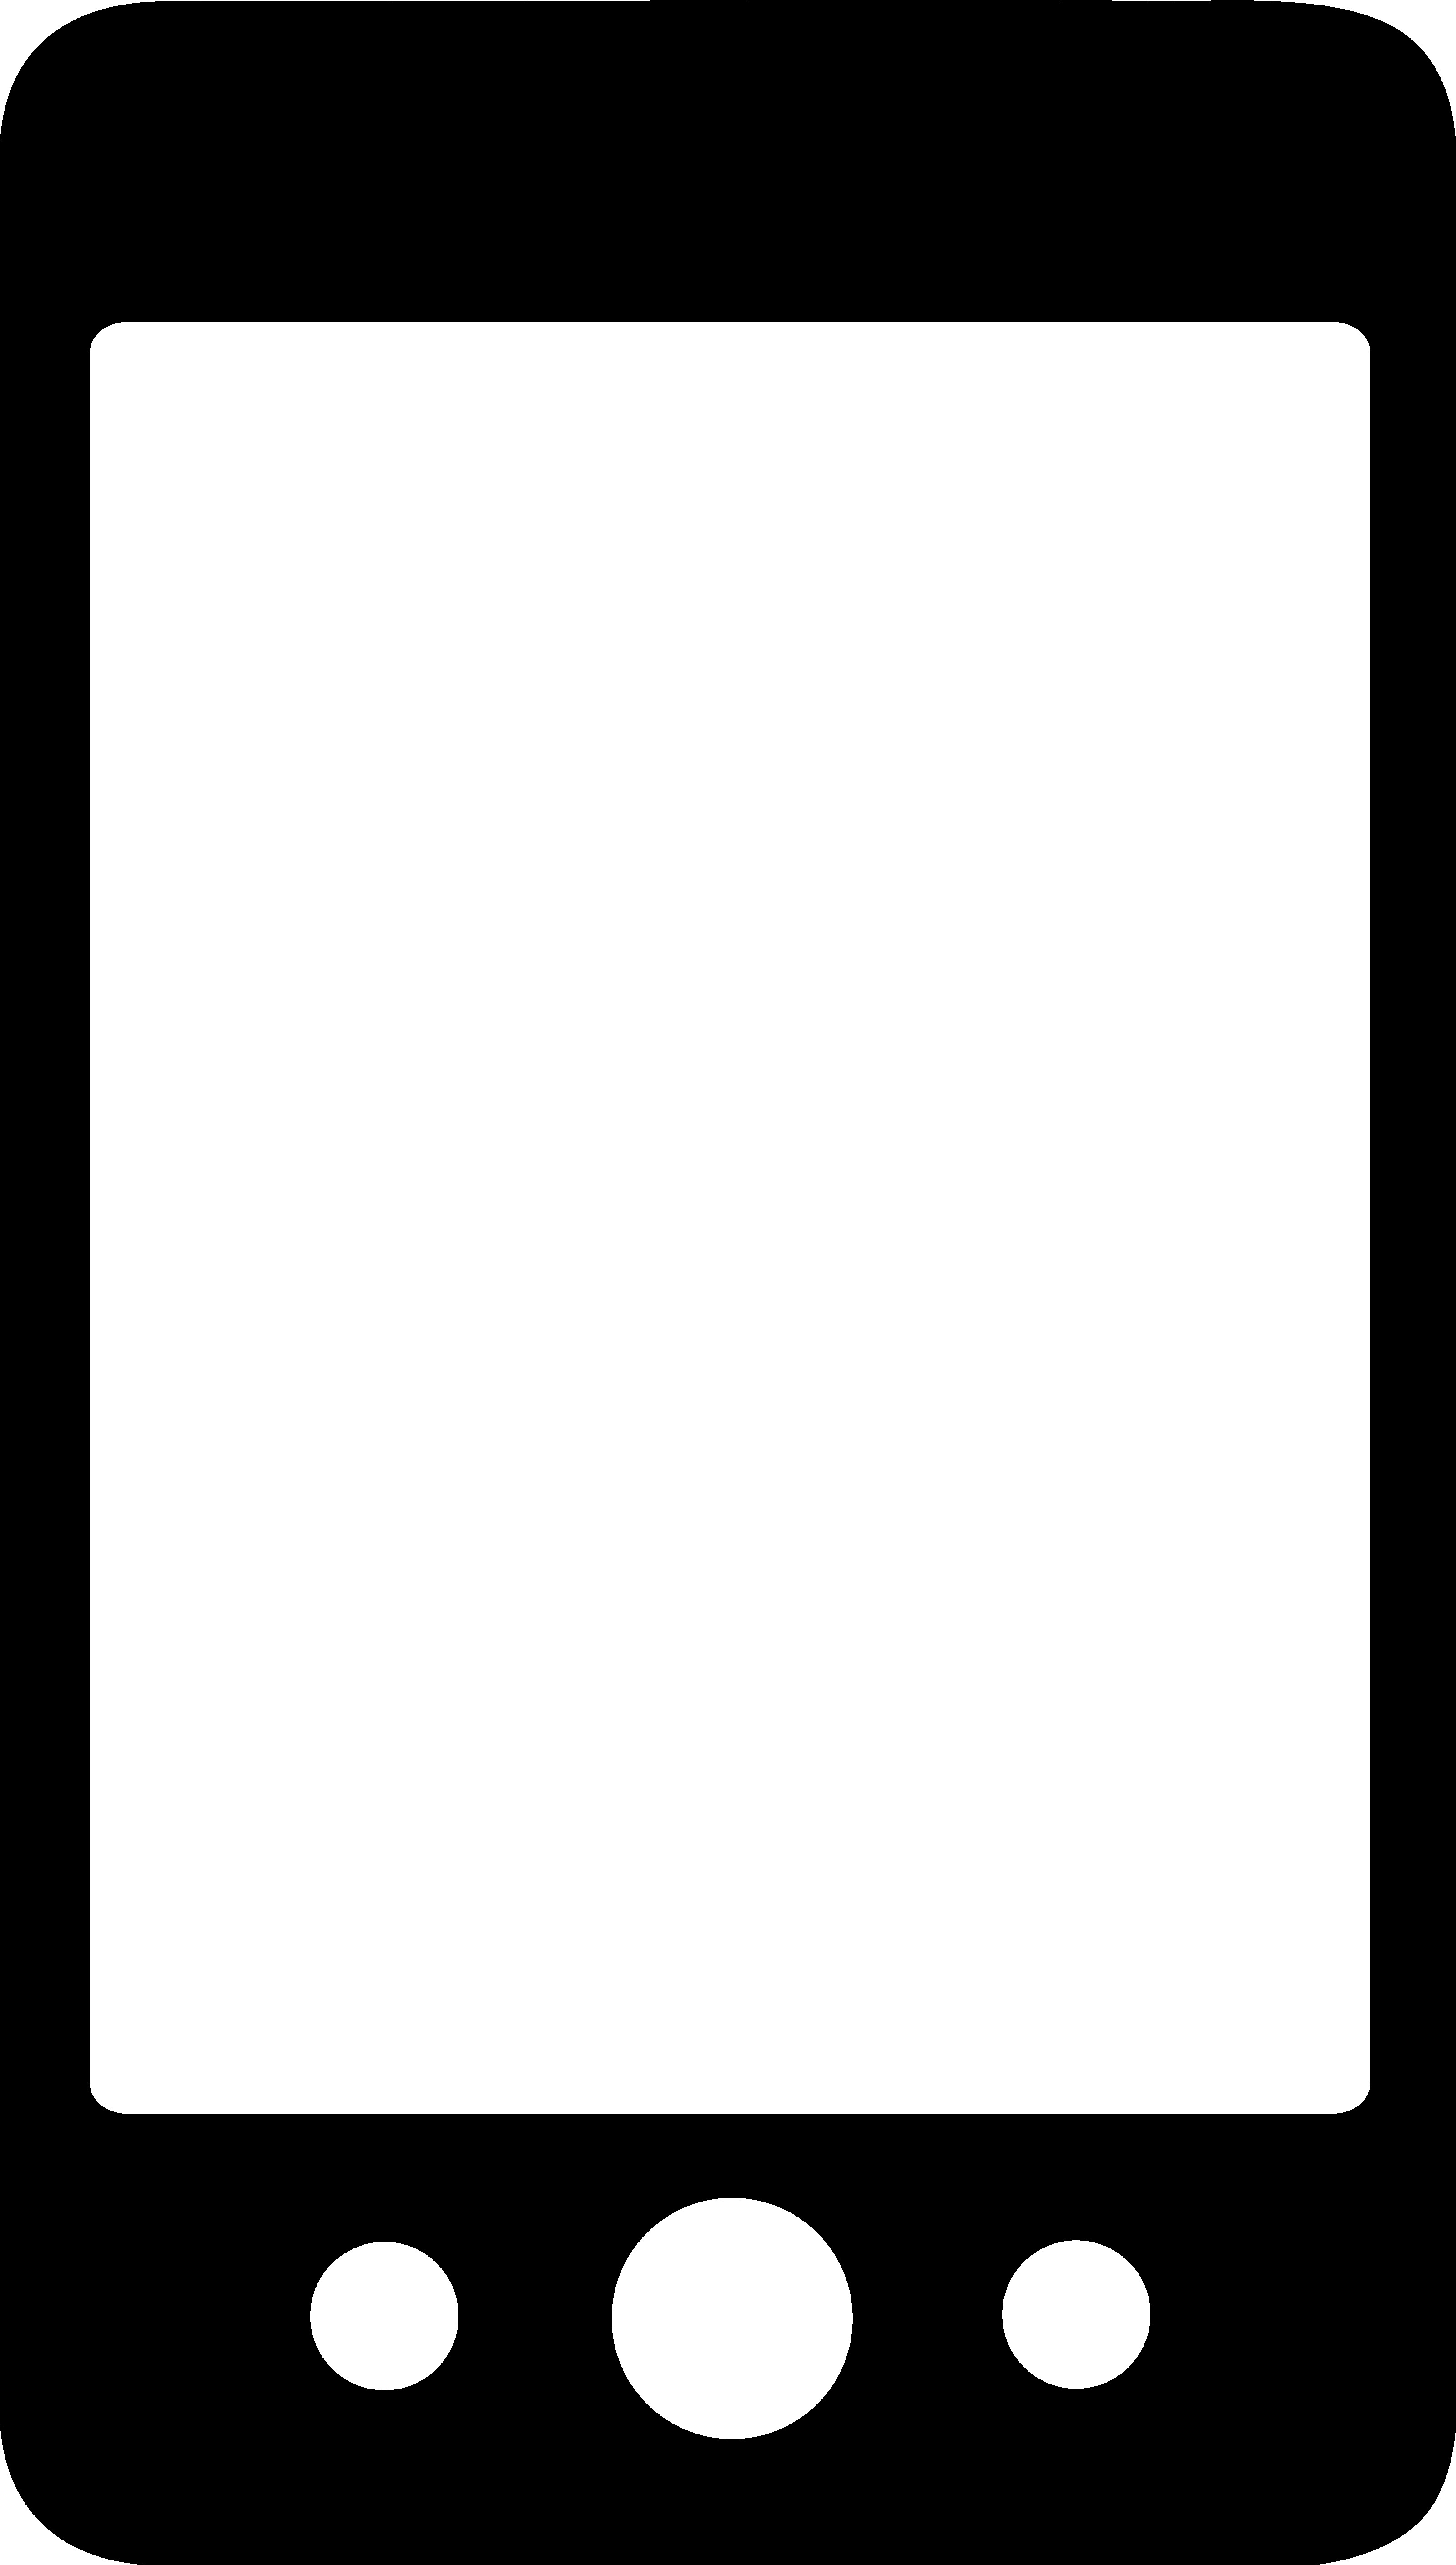 1062 Smartphone free clipart.